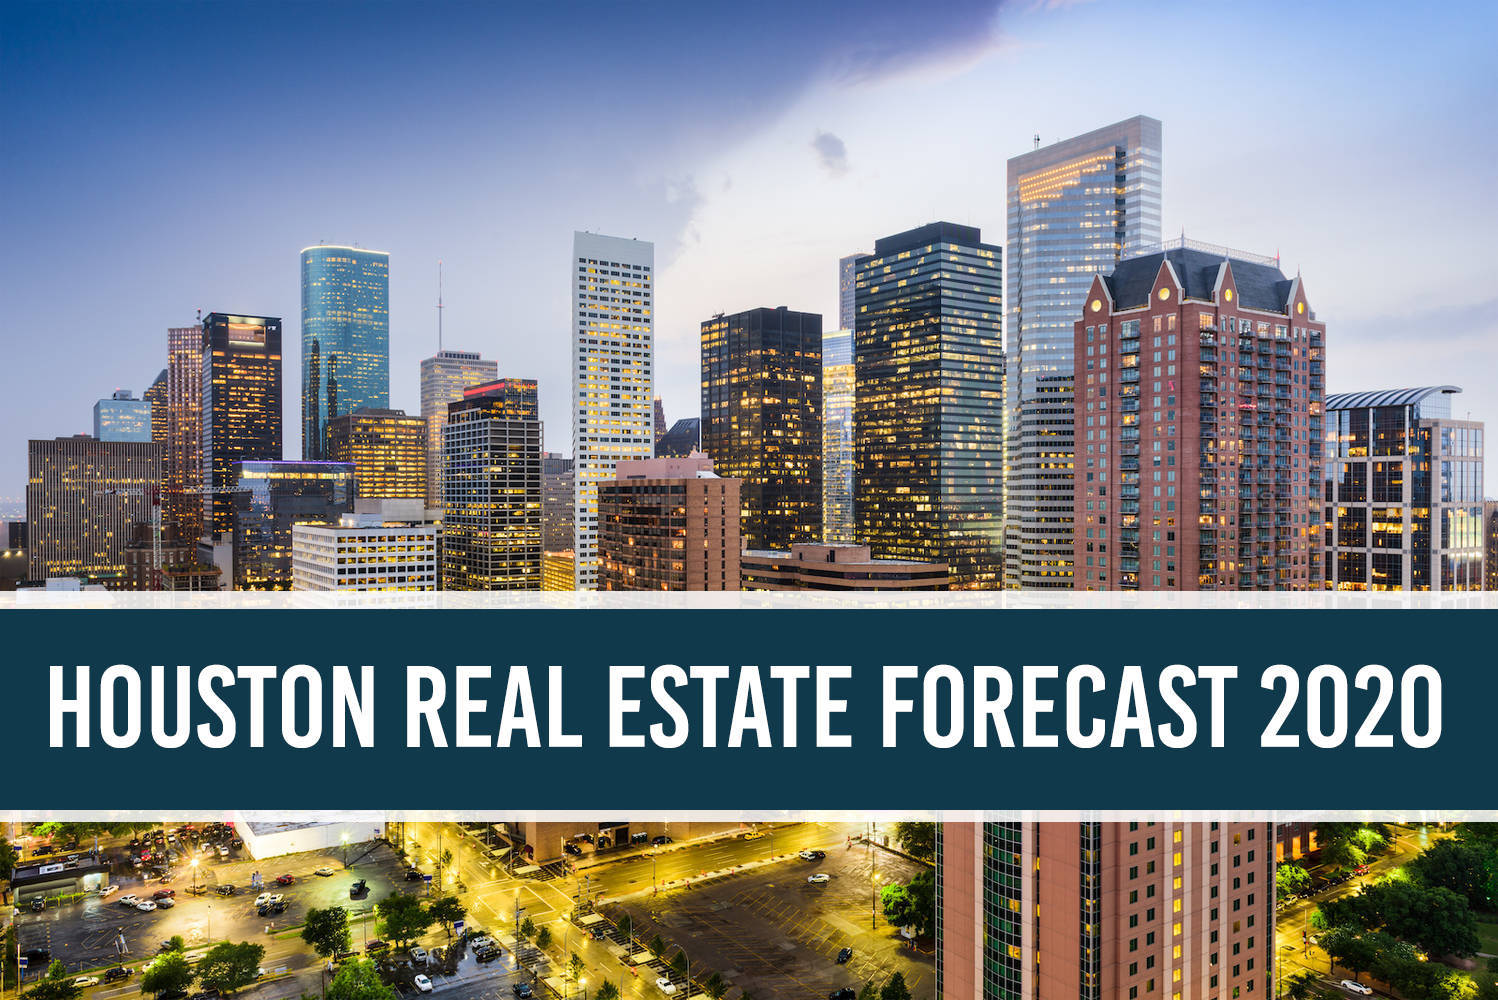 8 Questions About The 2020 Houston Real Estate Market